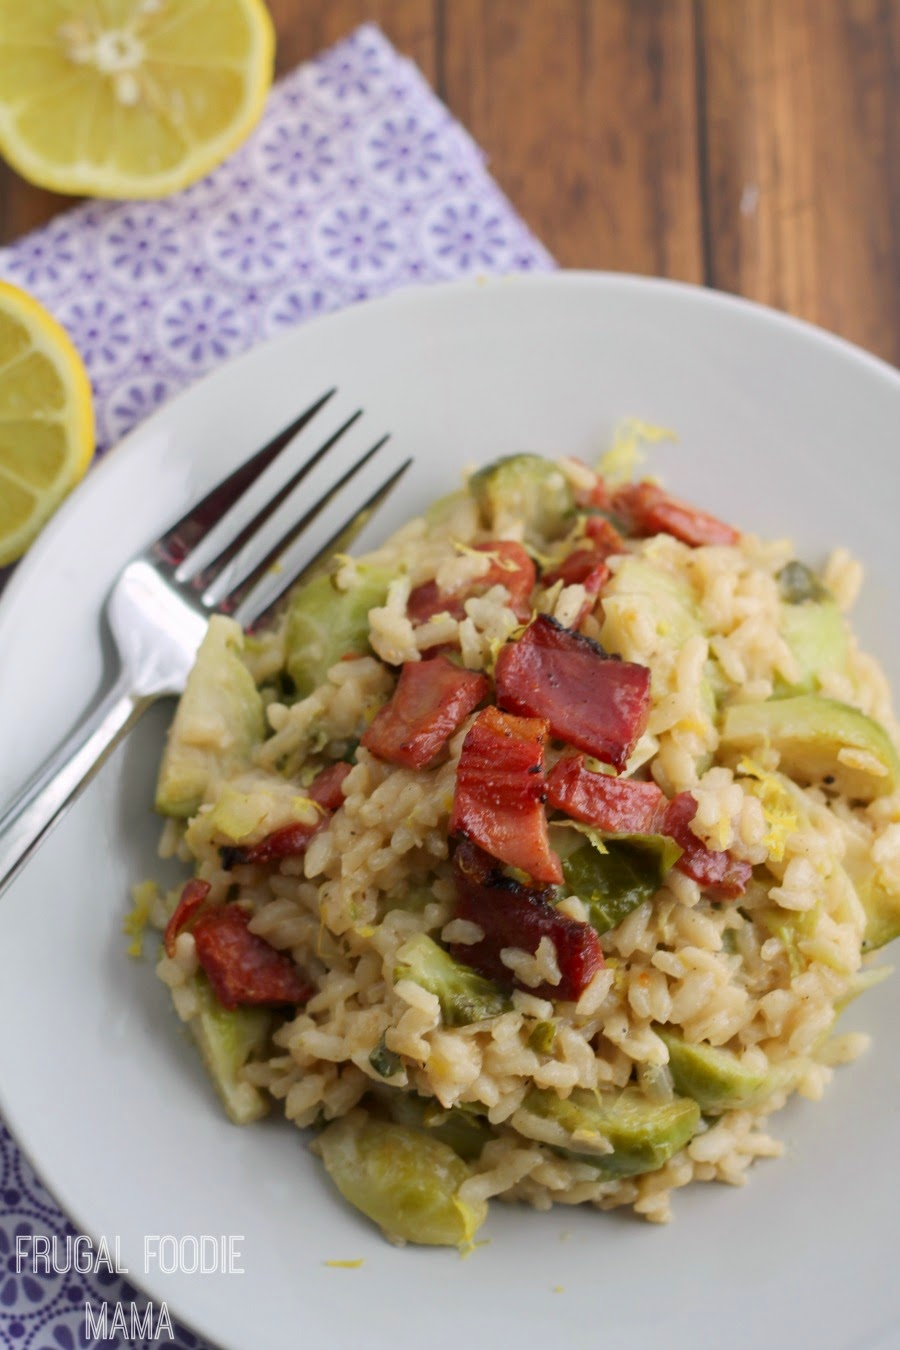 Bright lemon, fresh Brussels sprouts, crispy ham, and creamy arborio rice come together in this perfect for spring Lemon Risotto with Brussels Sprouts & Crispy Ham.